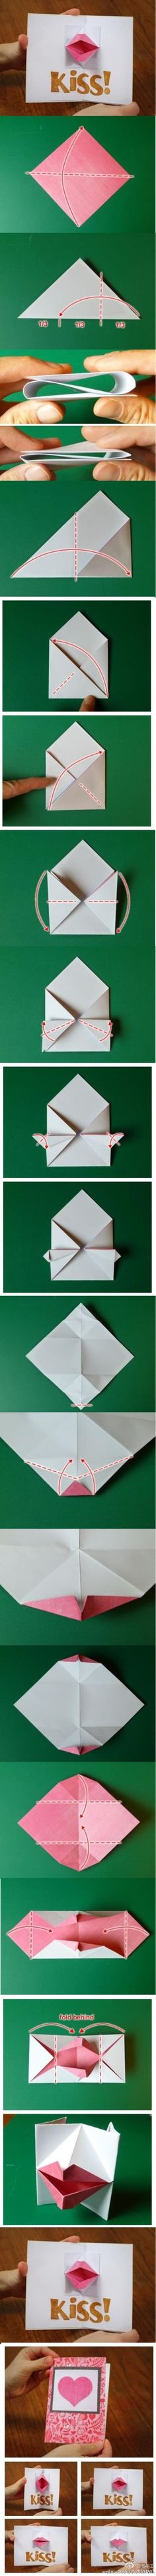 Origami bisou kiss